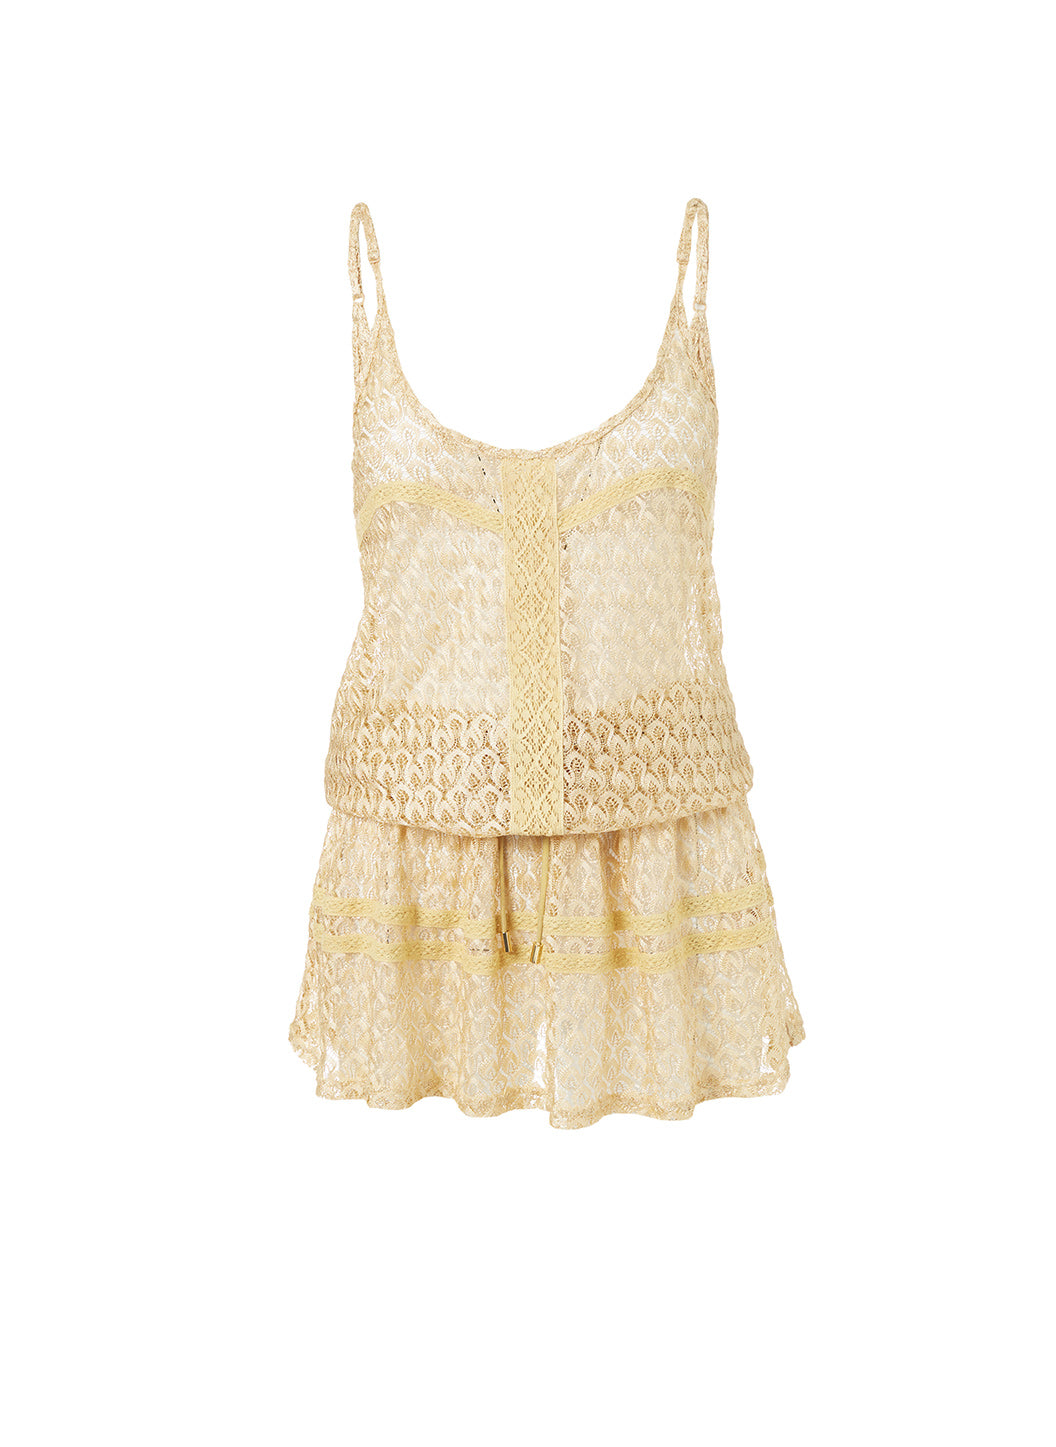 Khloe Gold Knit Over The Shoulder Dress - Melissa Odabash Beachwear